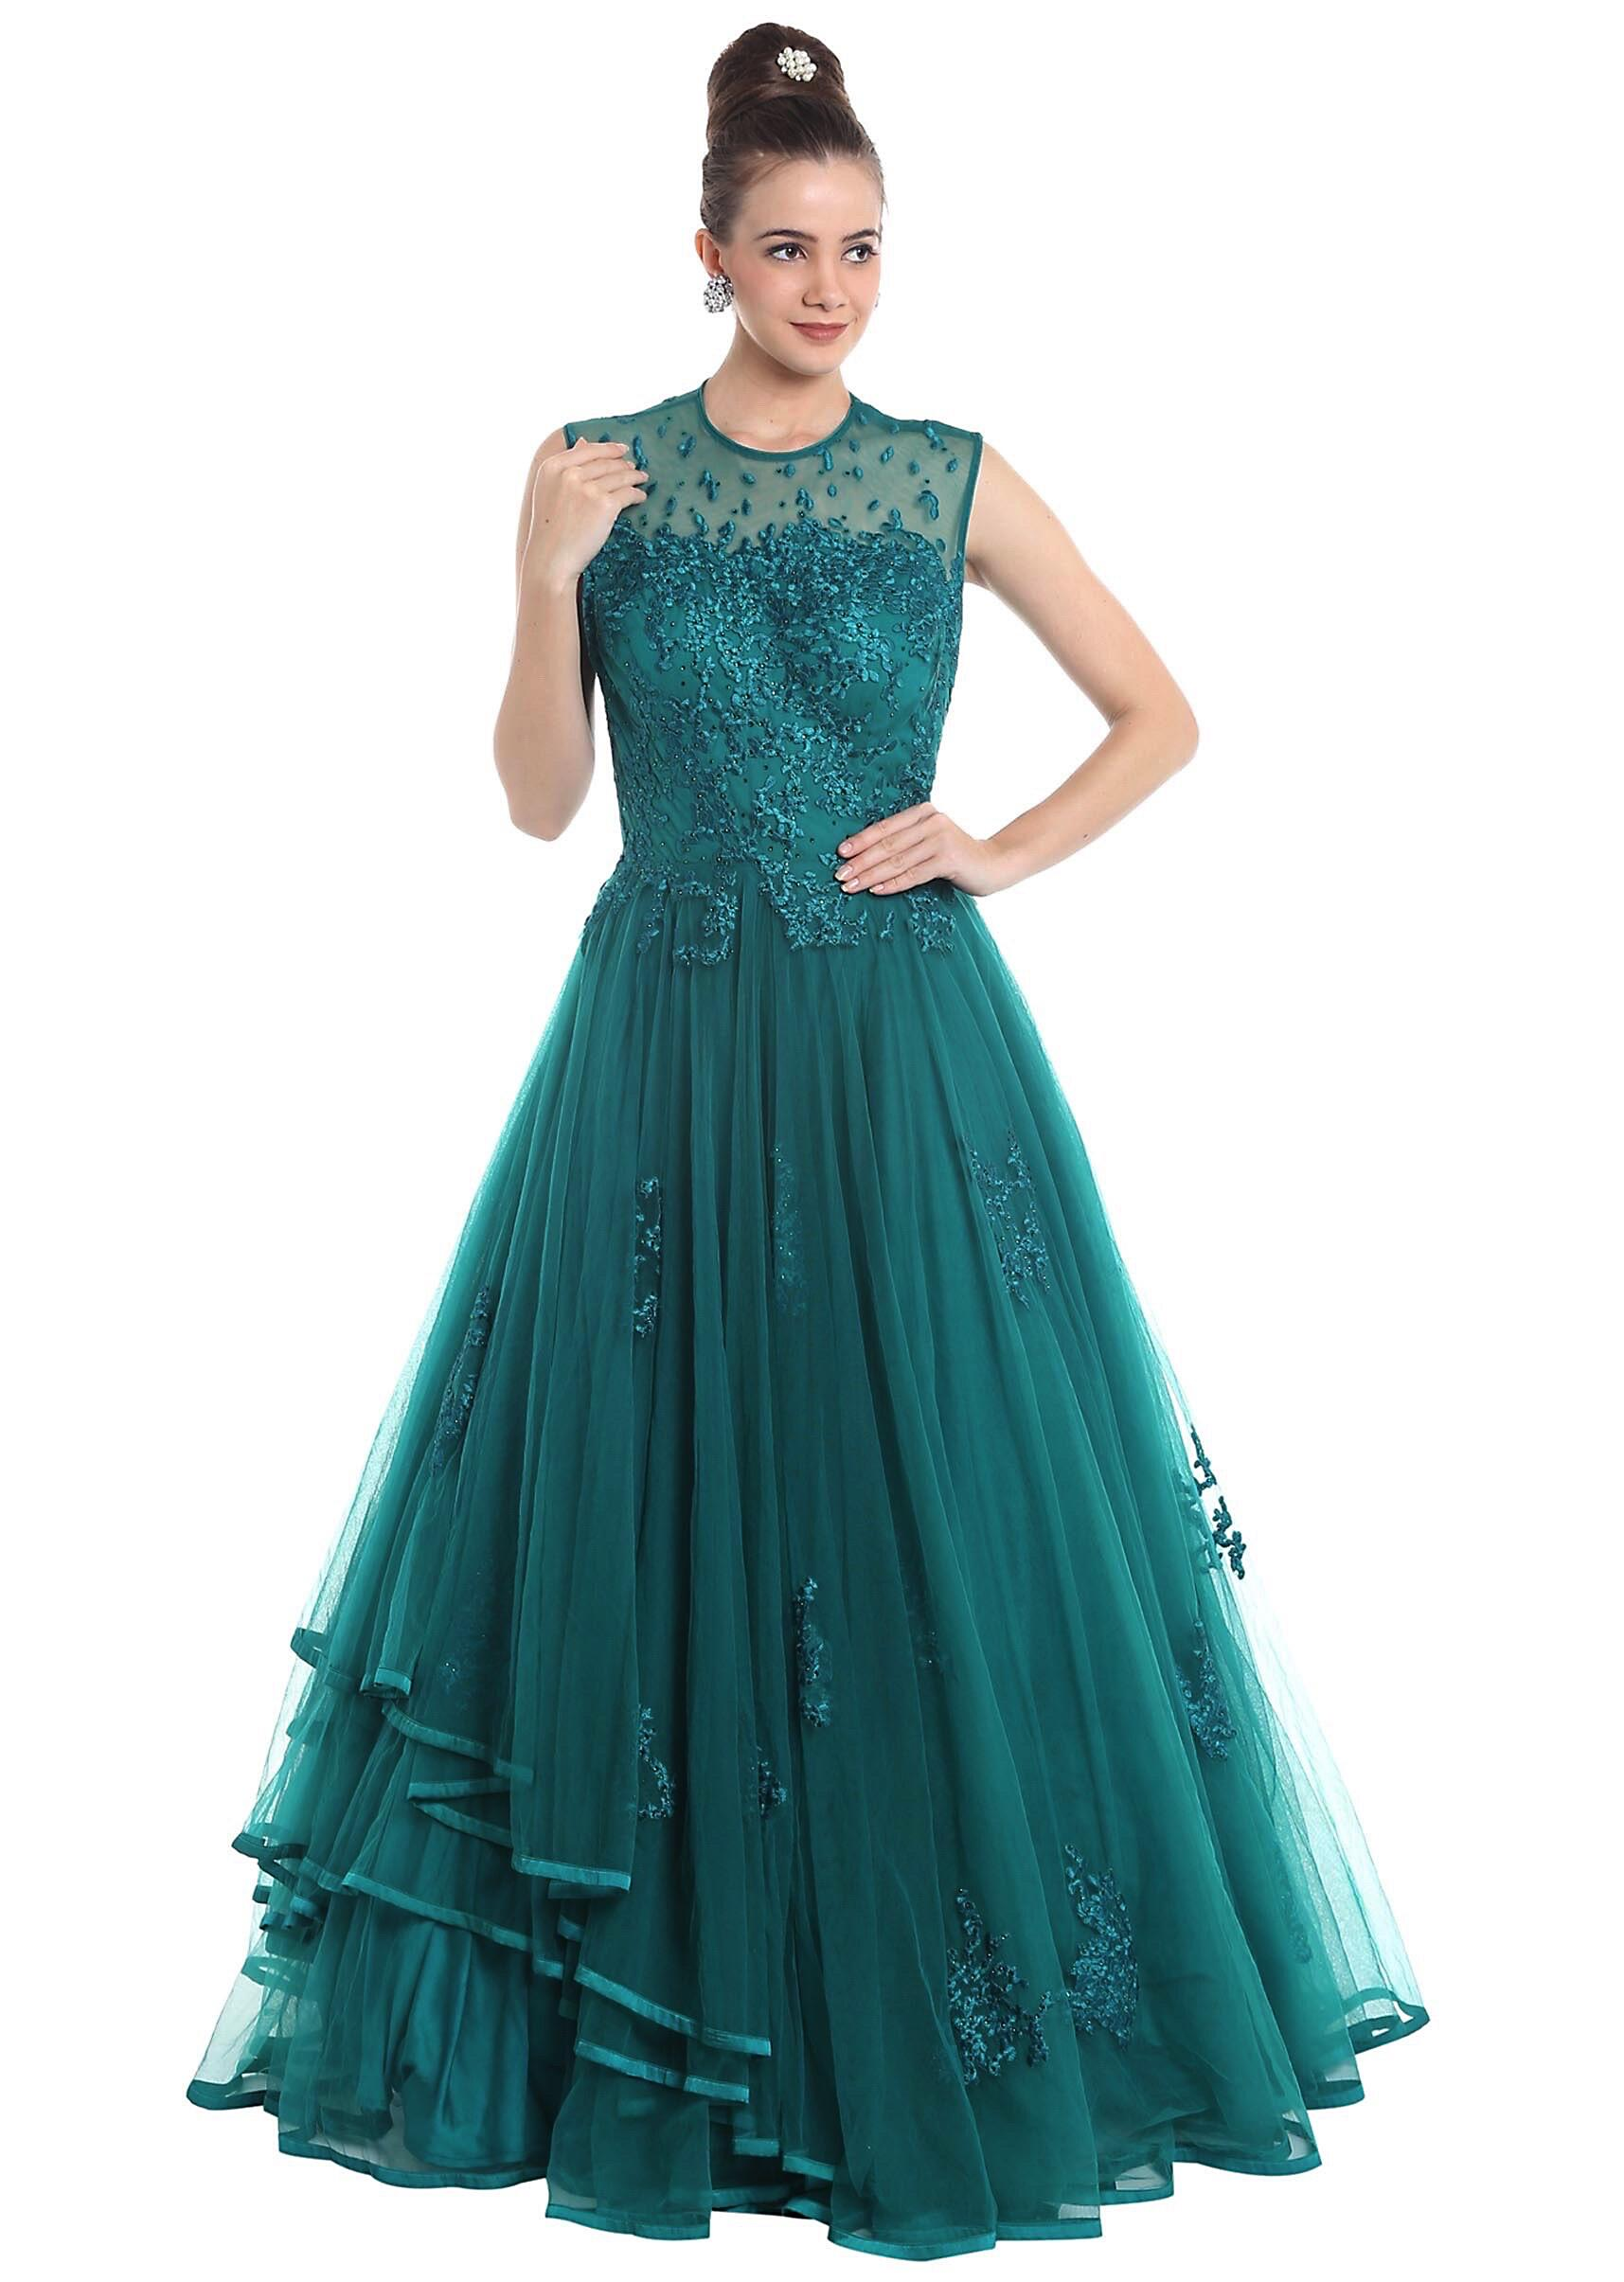 4beb8f4d1a Charlie Chauhan in Kalki teal blue net gown studded with stones